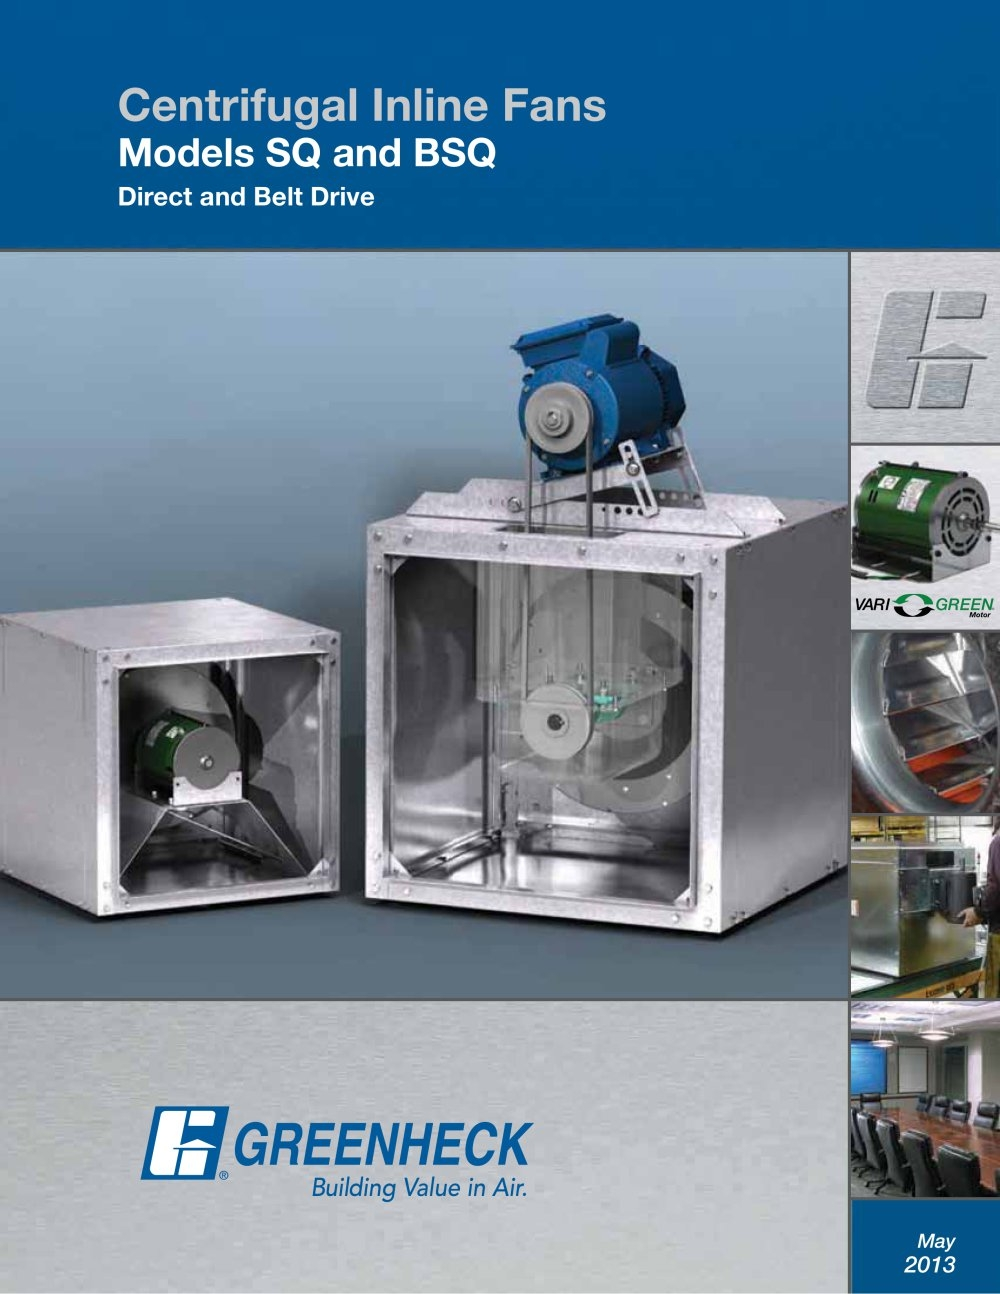 greenheck sq wiring diagram Download-Inline Fans Models SQ and BSQ 1 48 Pages 5-l